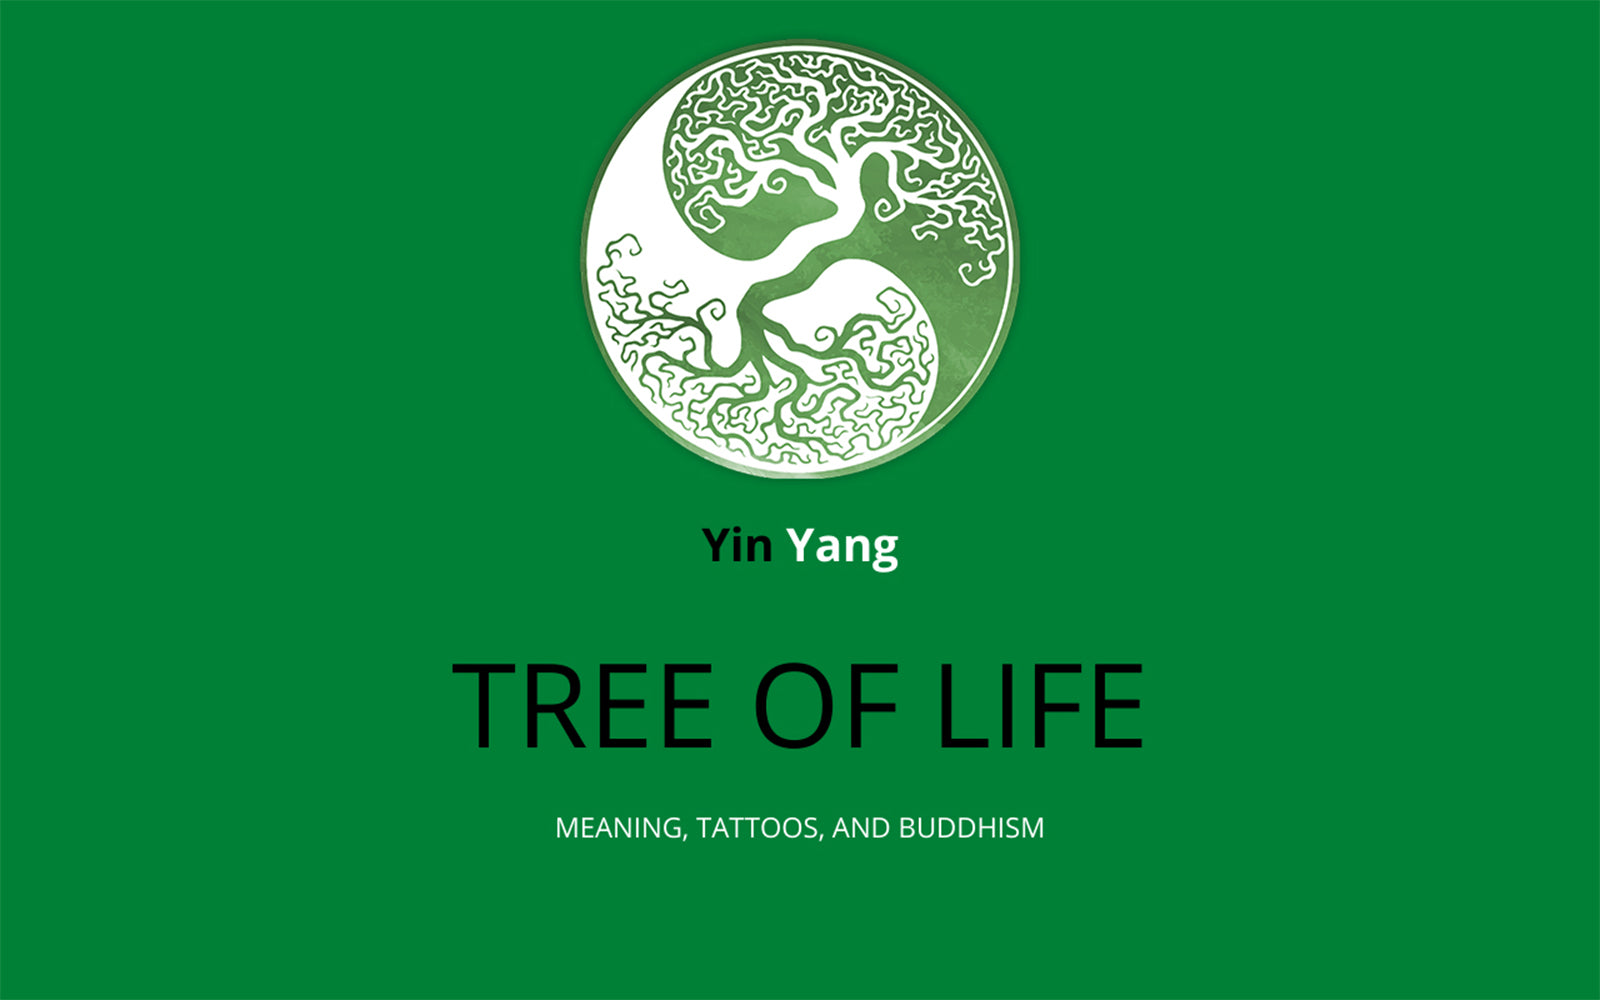 Yin Yang Tree of Life Meaning